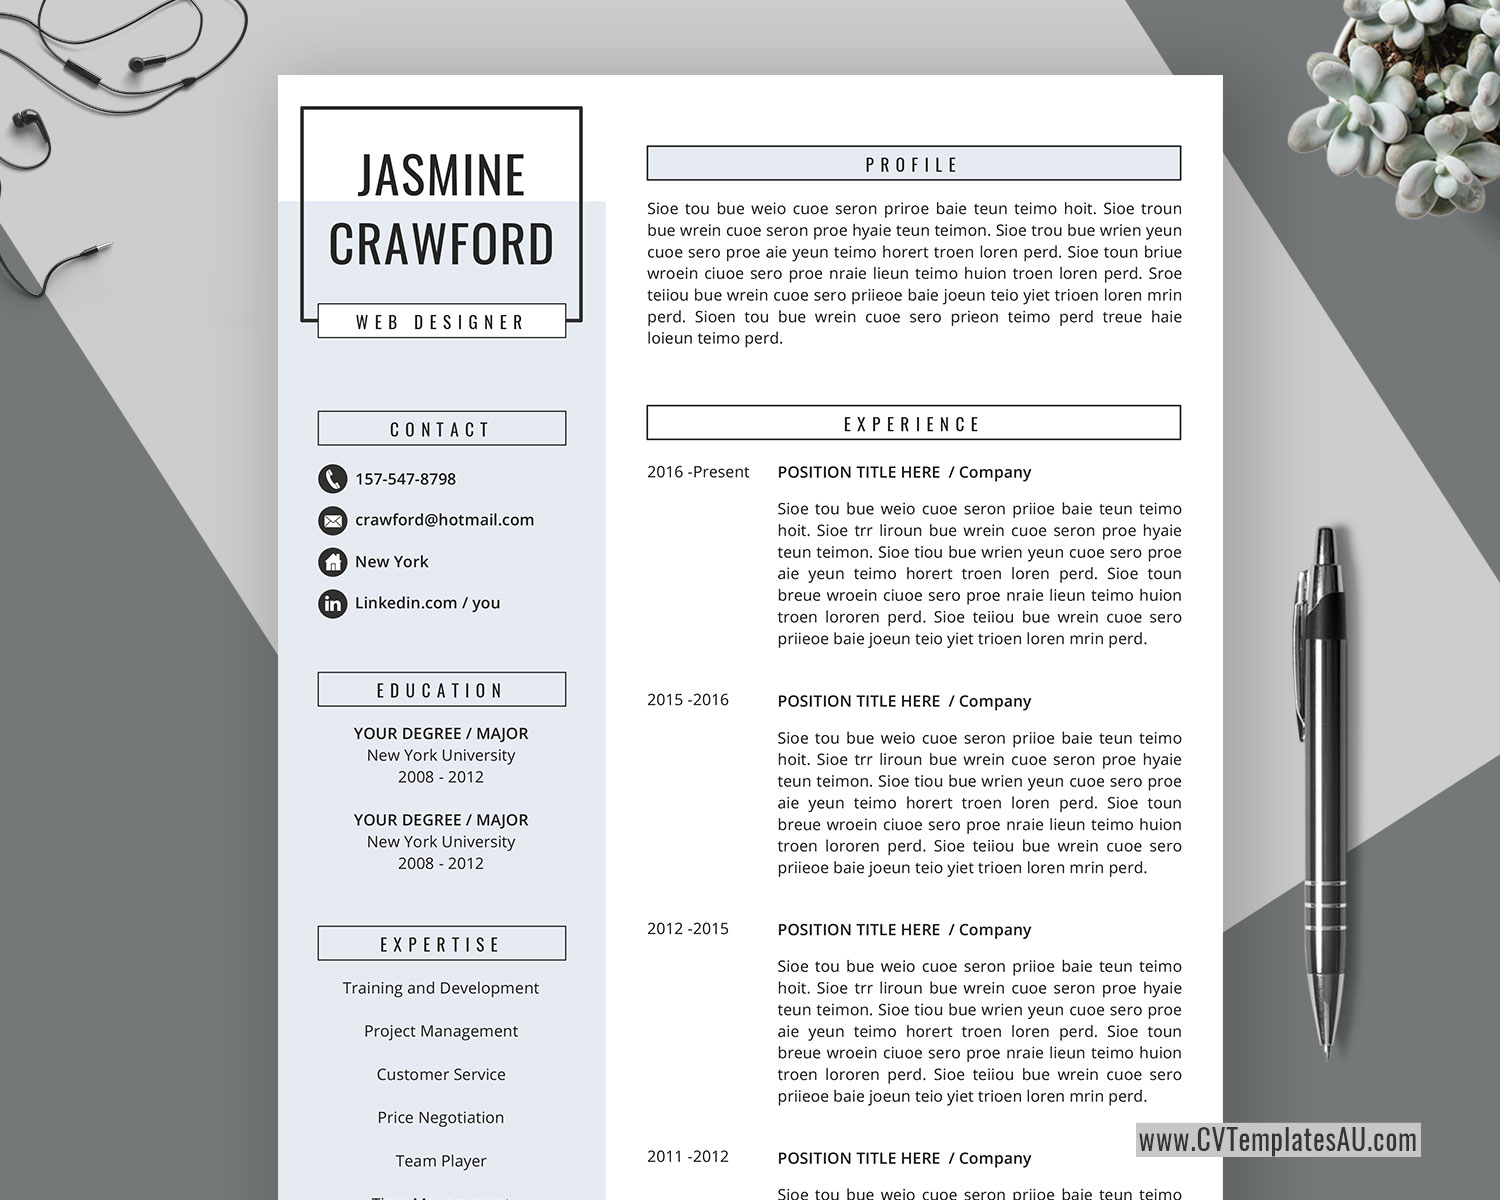 Professional Cv Template For Microsoft Word Cover Letter Curriculum Vitae Template Modern Resume Creative Resume 1 3 Page Resume Editable Resume Instant Download Cvtemplatesau Com